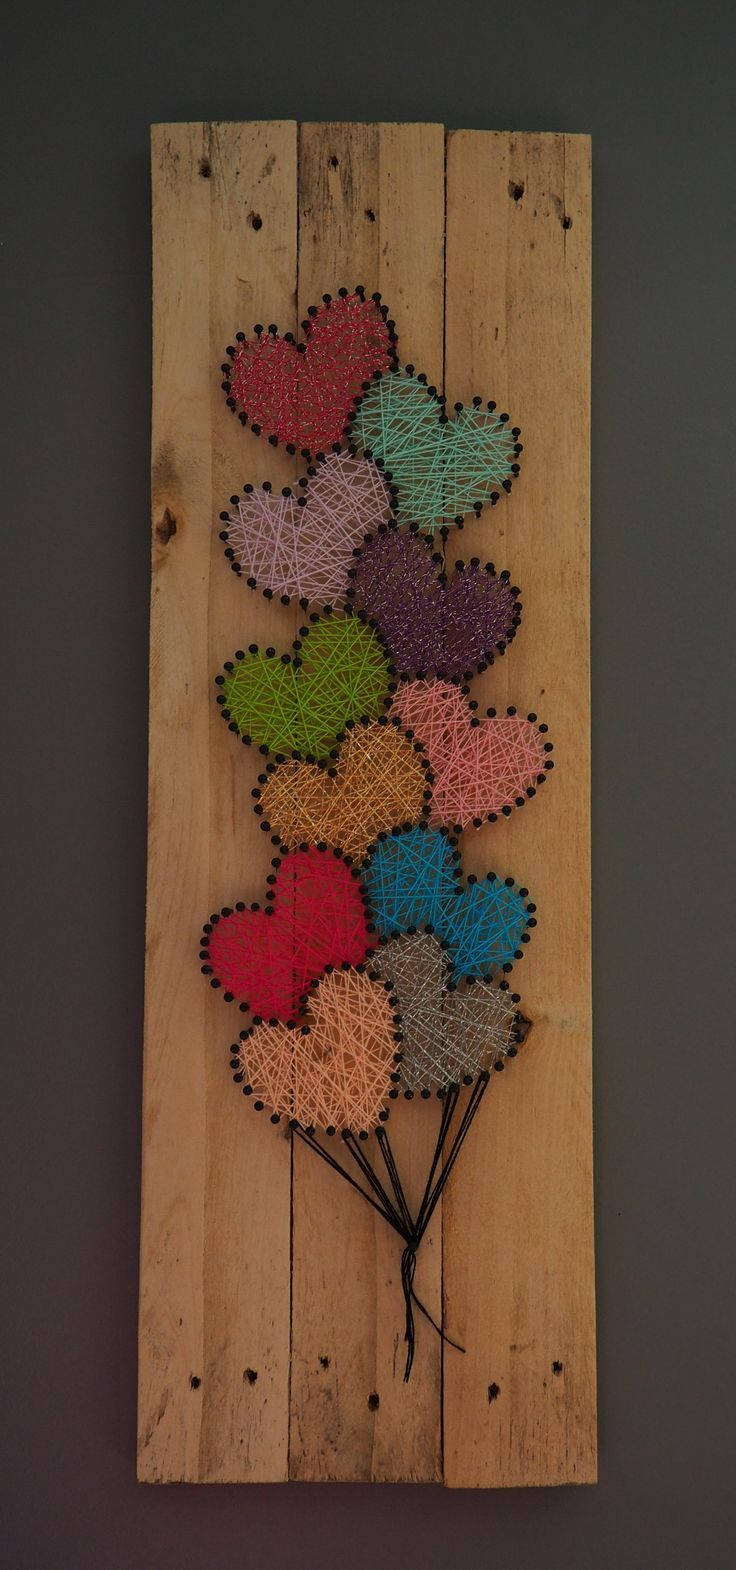 Uncategorized String Art Balloons pin by kreschka on diy pinterest string art craft and truly adorable pallet wood